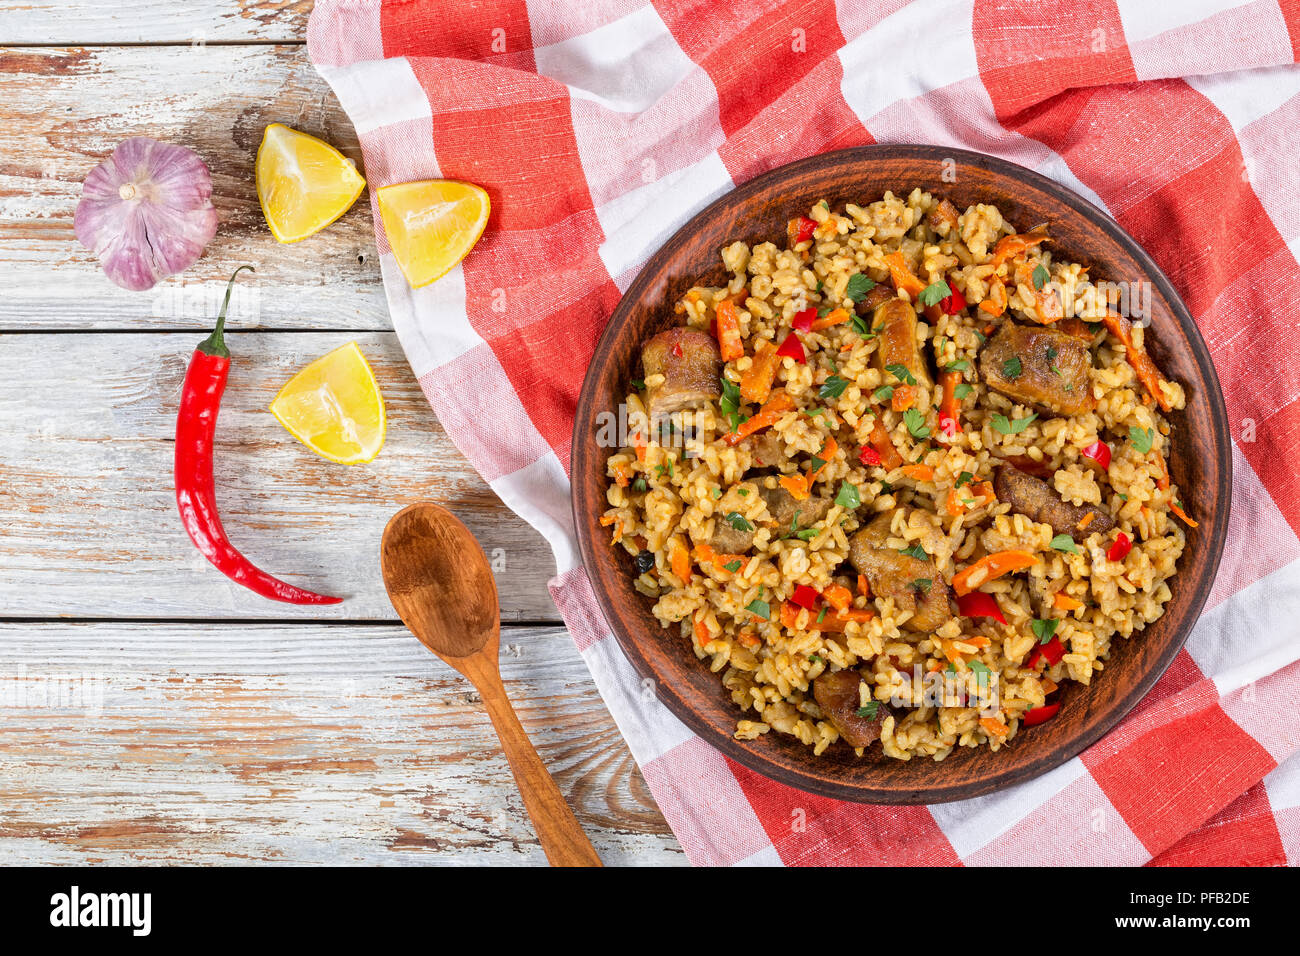 rice with meat, pepper, vegetables and spices on dish, lemon slice, garlic, chili pepper and wooden spoon on white peeling paint planks, view from abo Stock Photo